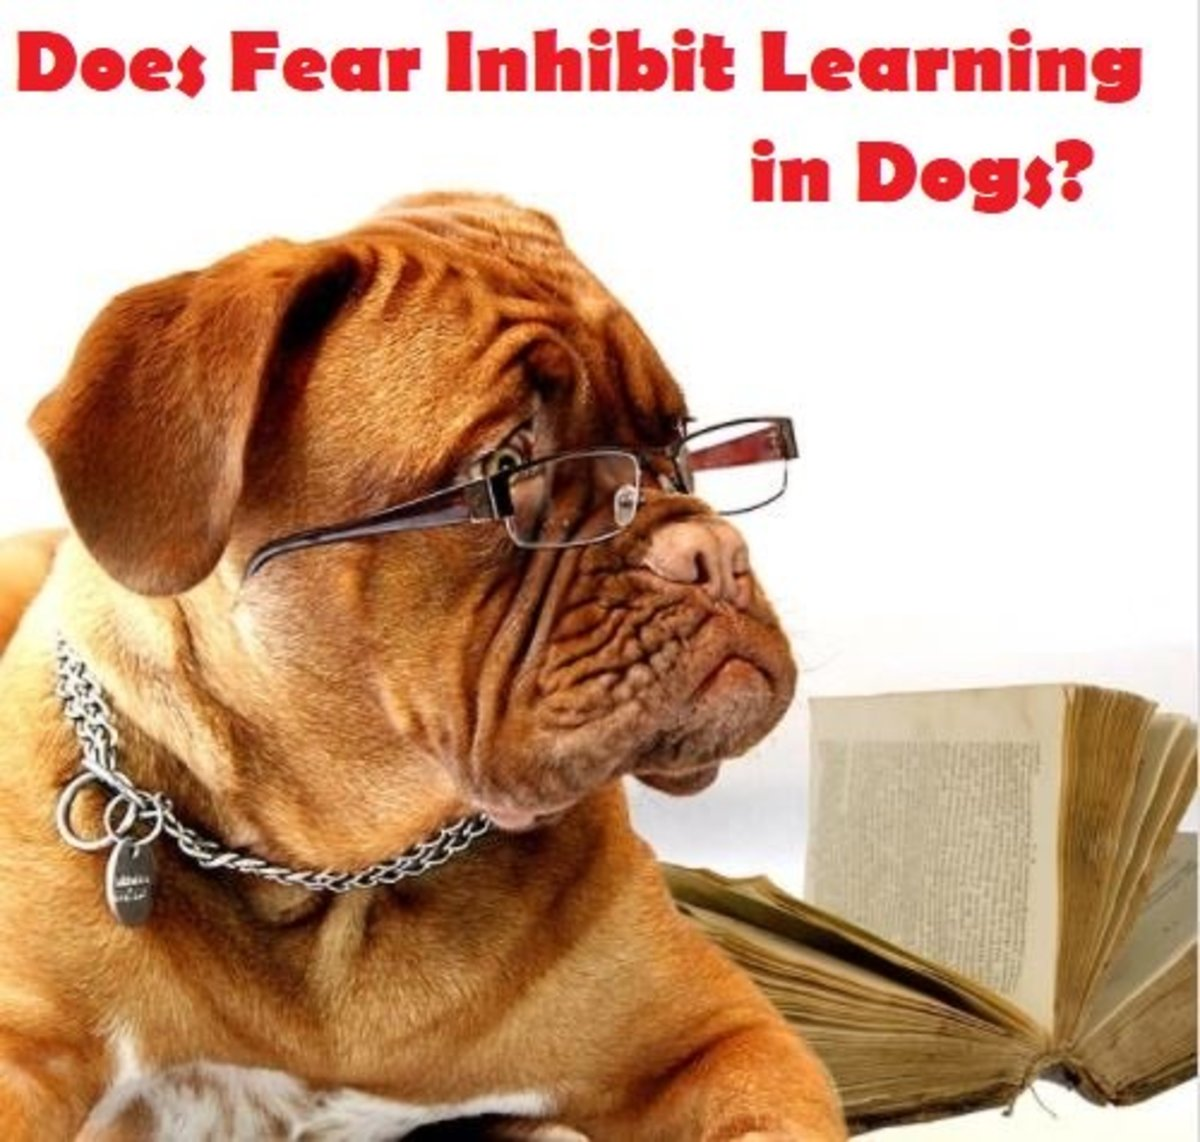 Does Fear Inhibit Learning in Dogs?